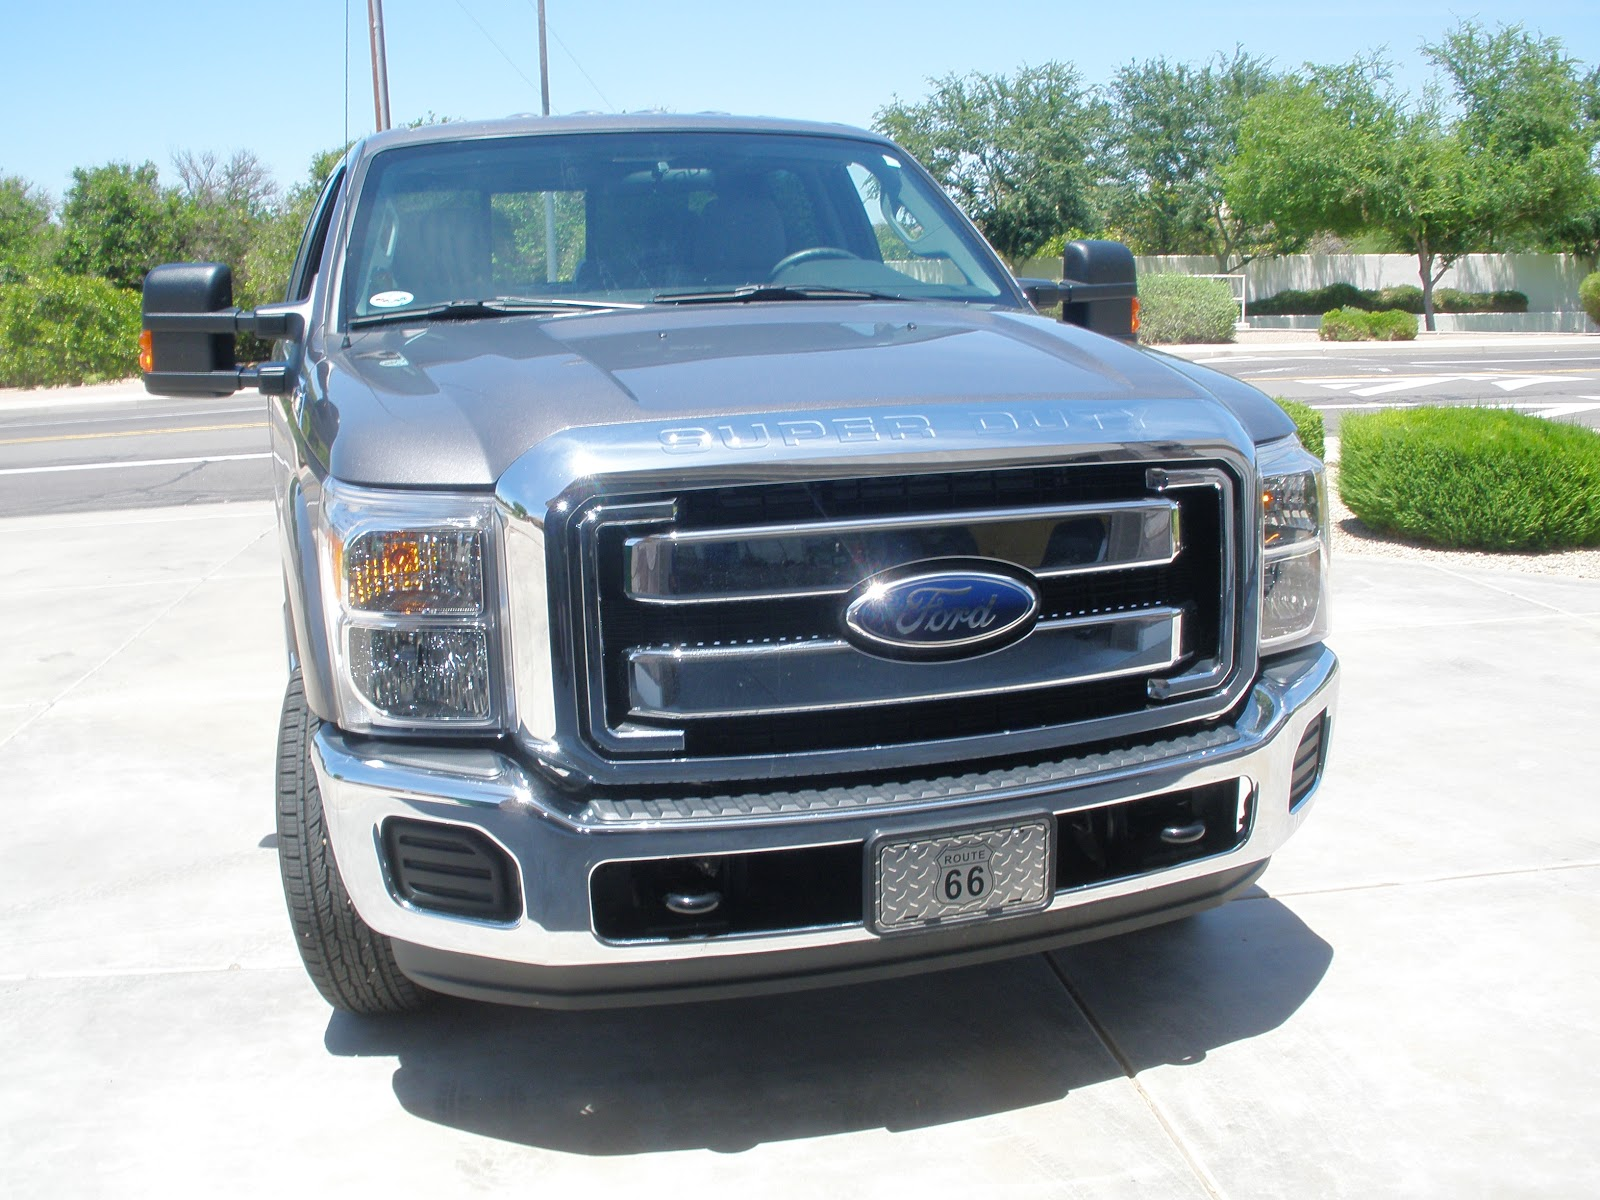 Mello Mikes Truck Camper Adventures  Review of the 2011 Ford F